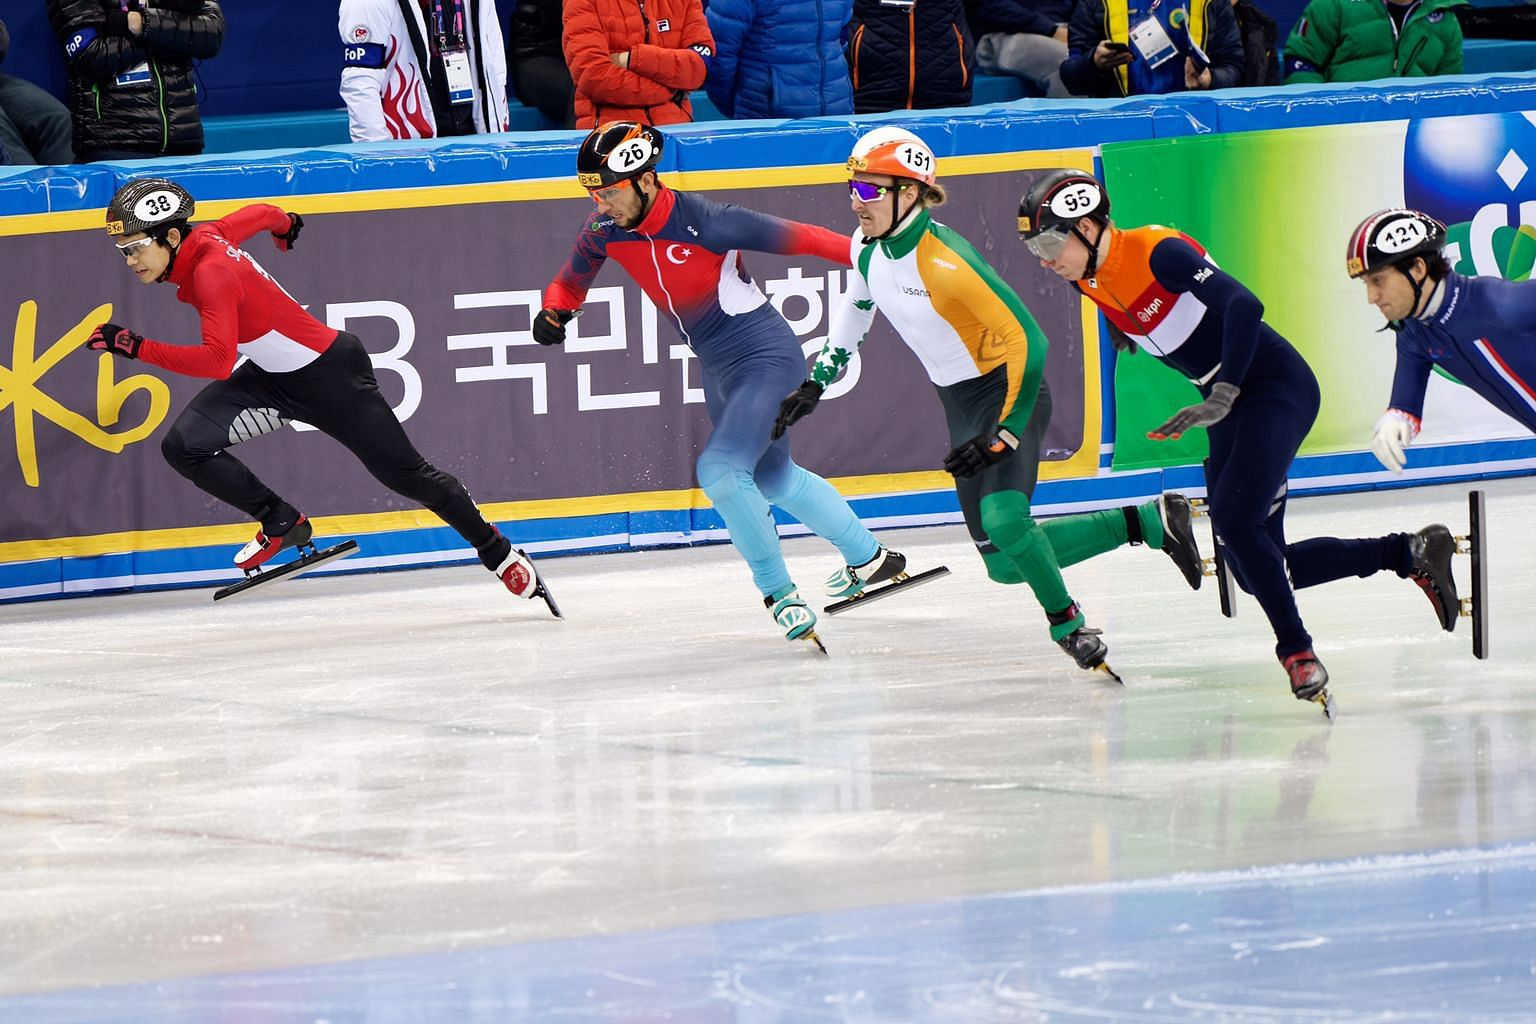 National short-track speed skater Lucas Ng (extreme left) in action in the men's 500m yesterday at the International Skating Union World Cup in Gangneung, South Korea.